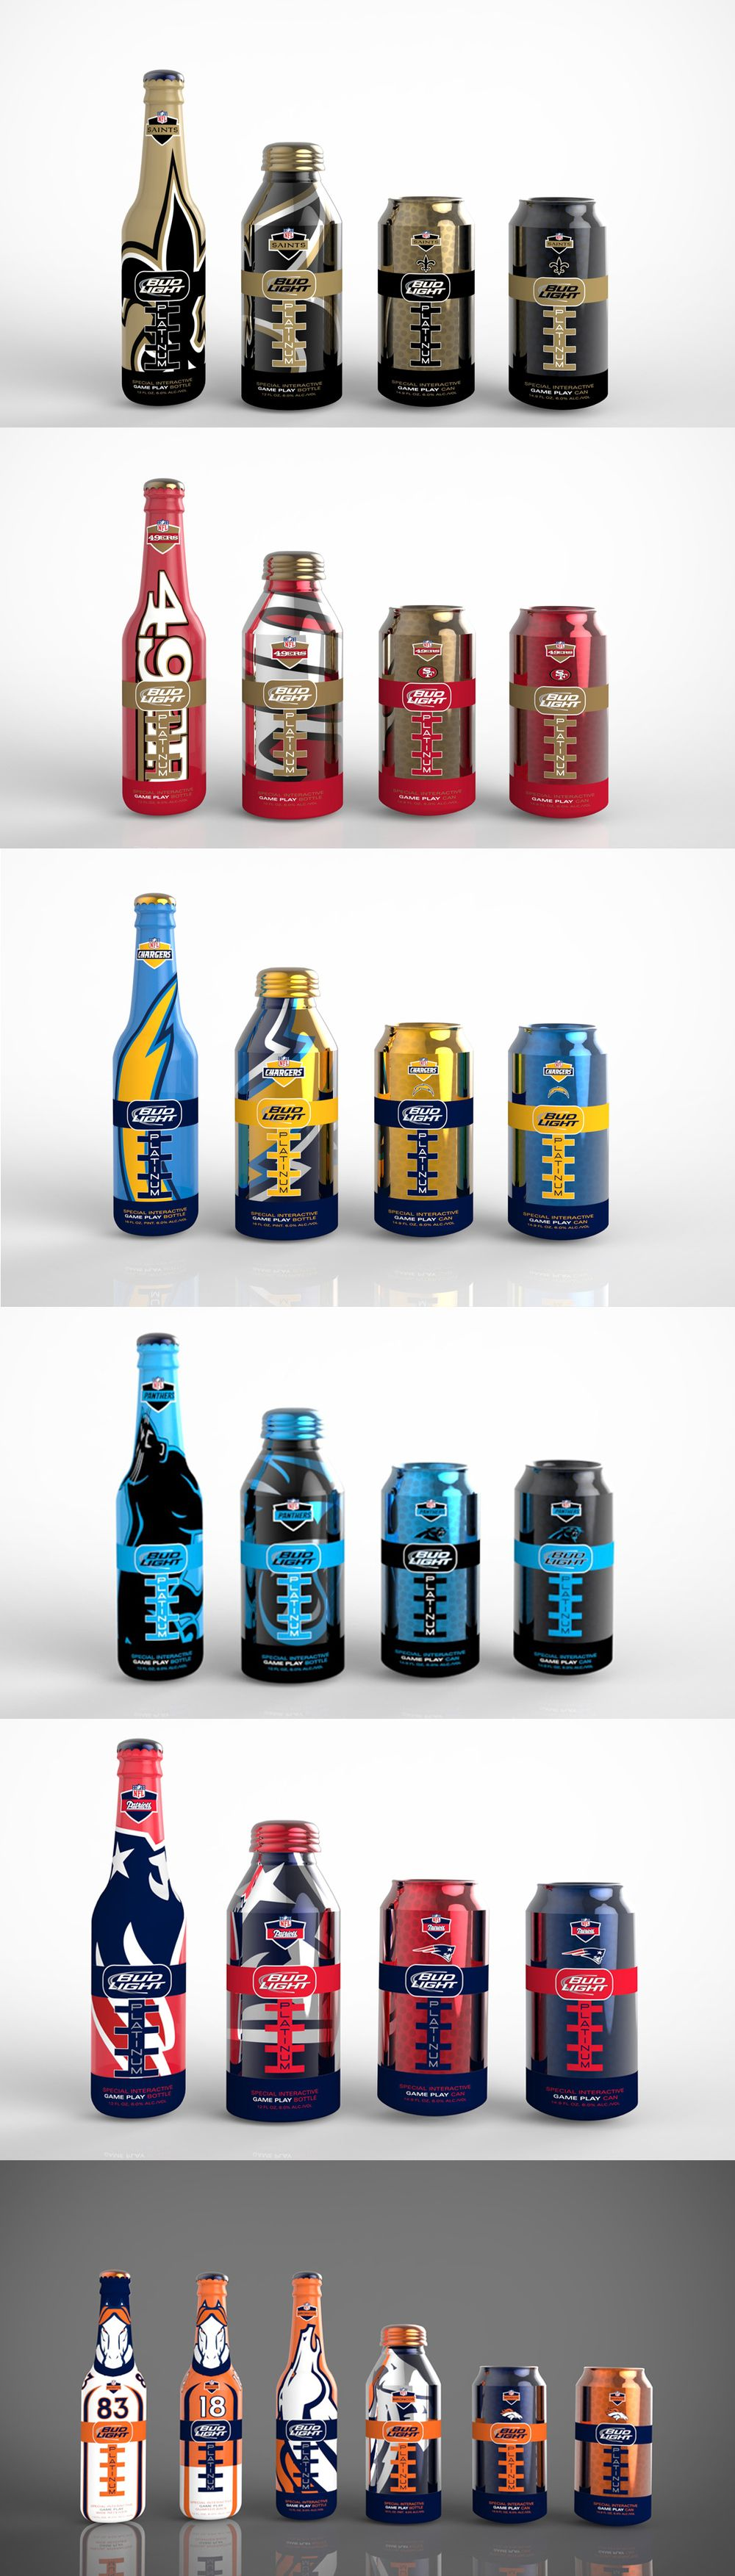 Wow Look At This Sports Energy Packaging Collection Pd Energy Drinks Packaging Brand Packaging Packaging Design Inspiration